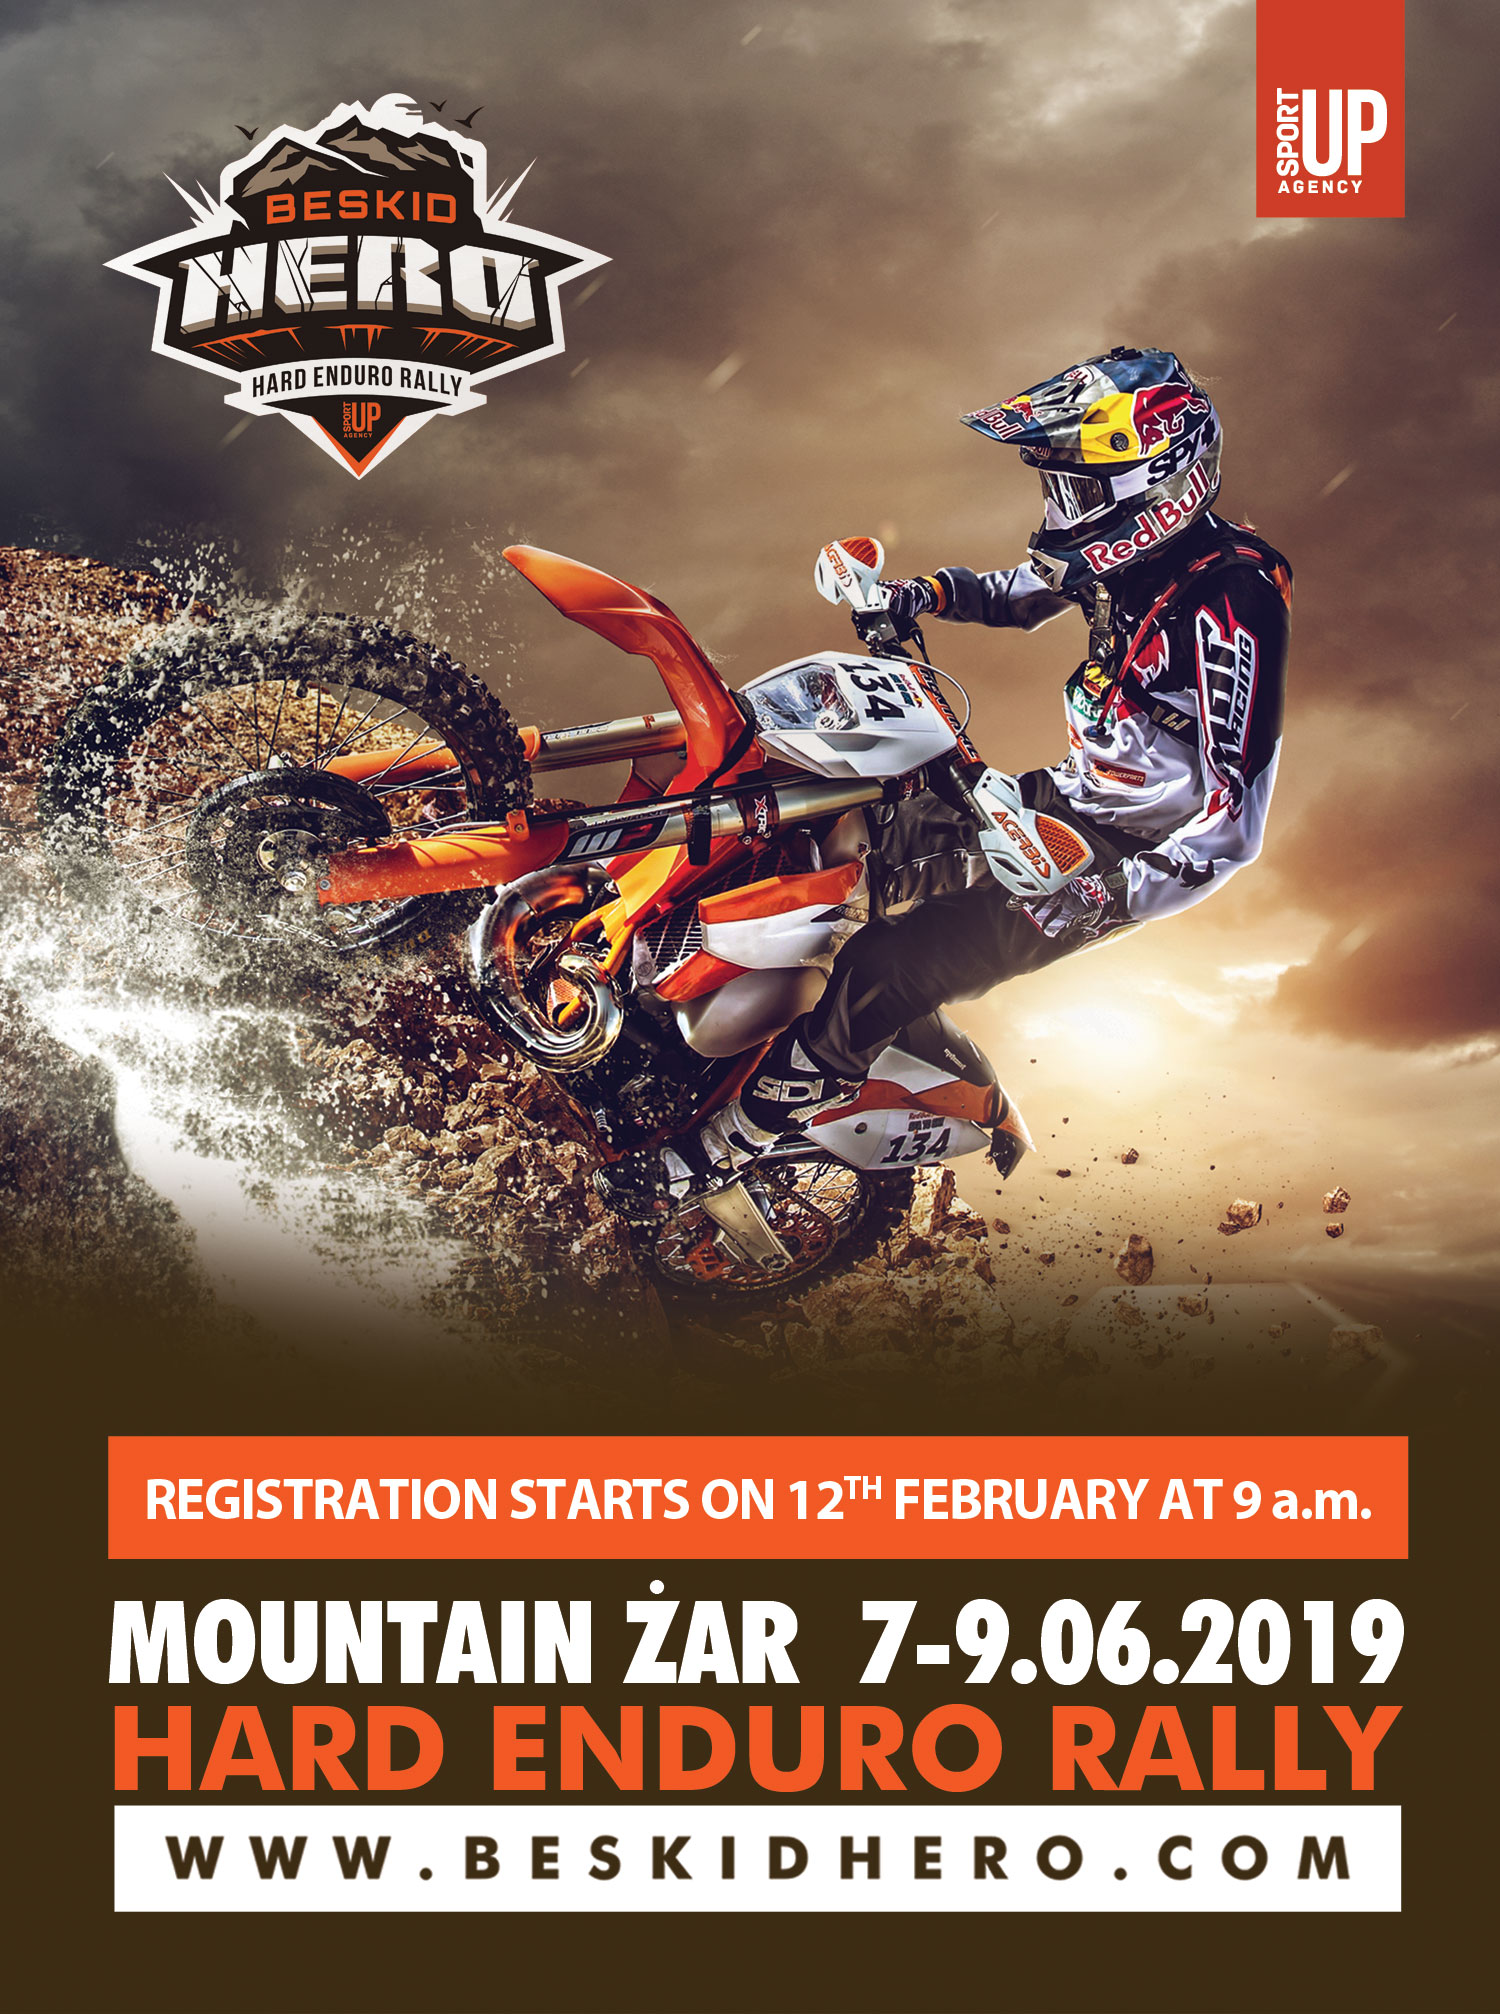 Beskid_HERO_2019_registration